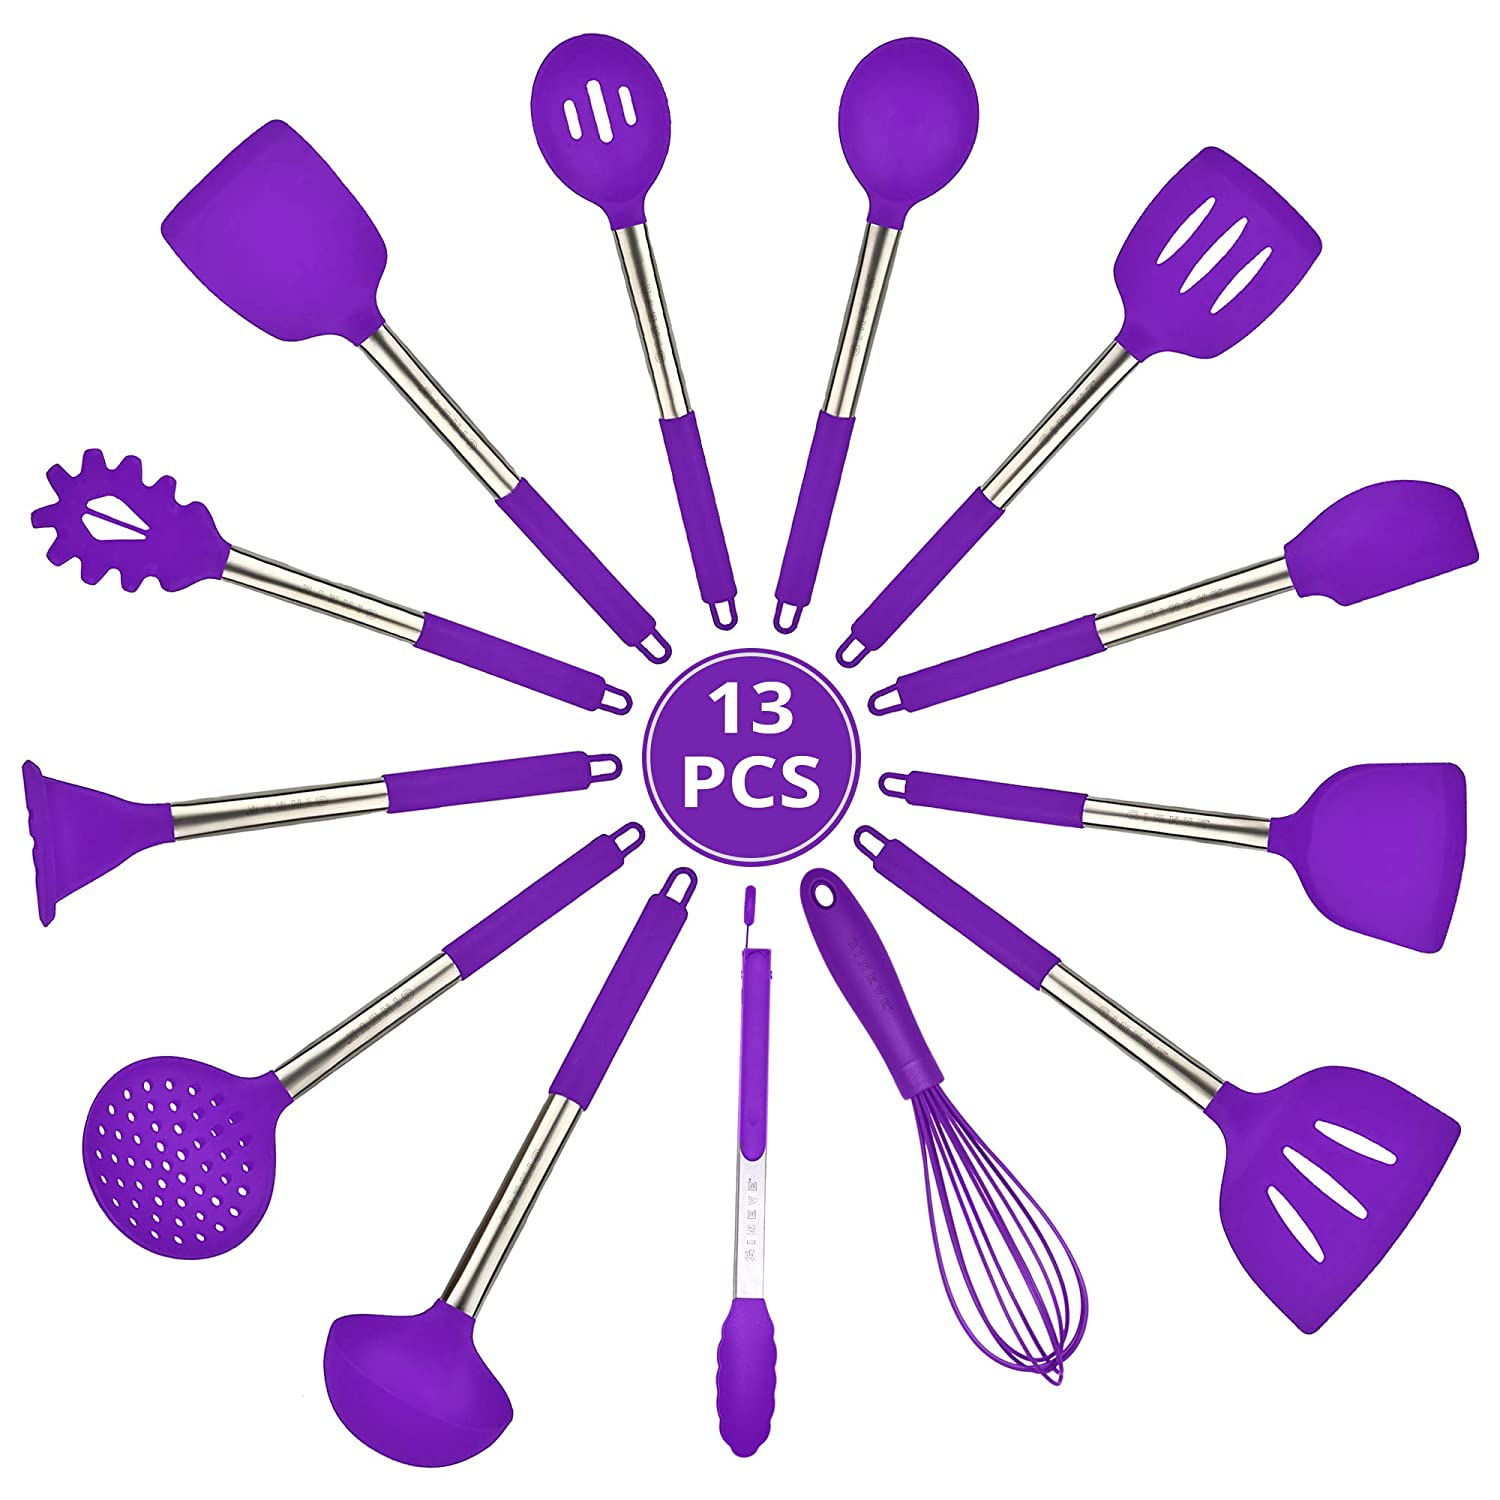 GINEVE Utensils For Pressure Cooker Accessories Set Use with Insta Pot & Instapot Accessory, Nice For Instant Pot Accessories 6 qt, For 3 5 6 8 10 qt Insta Pot, Use With All types of Cookware